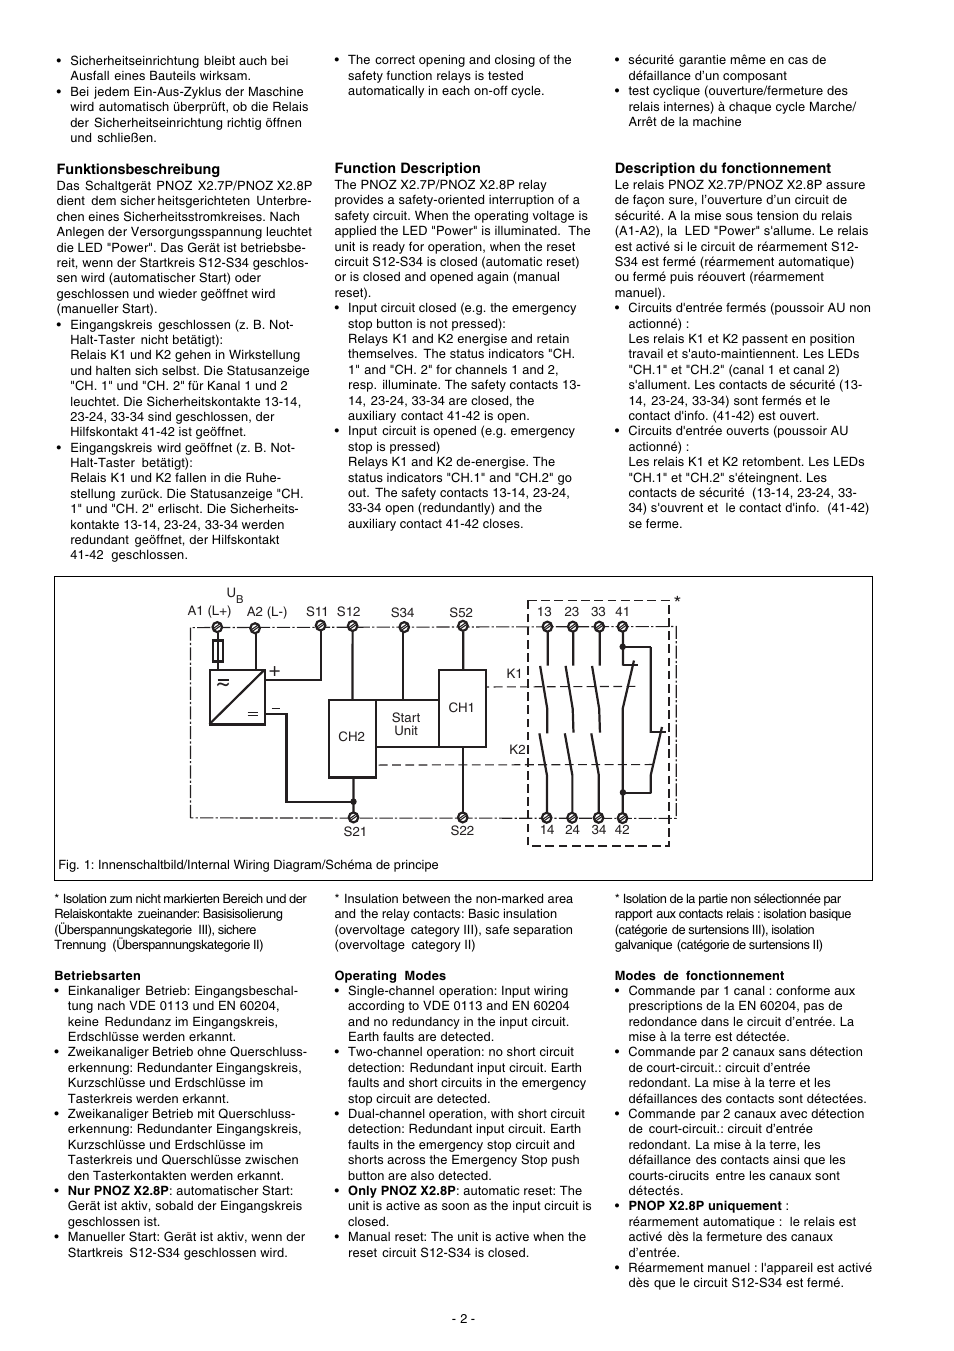 pilz pnoz x27p c 24 240vac_dc 3n_o 1n_c page2 pilz pnoz x2 7p c 24 240vac dc 3n o 1n c user manual page 2 20 pilz pnoz x2 wiring diagram at gsmx.co